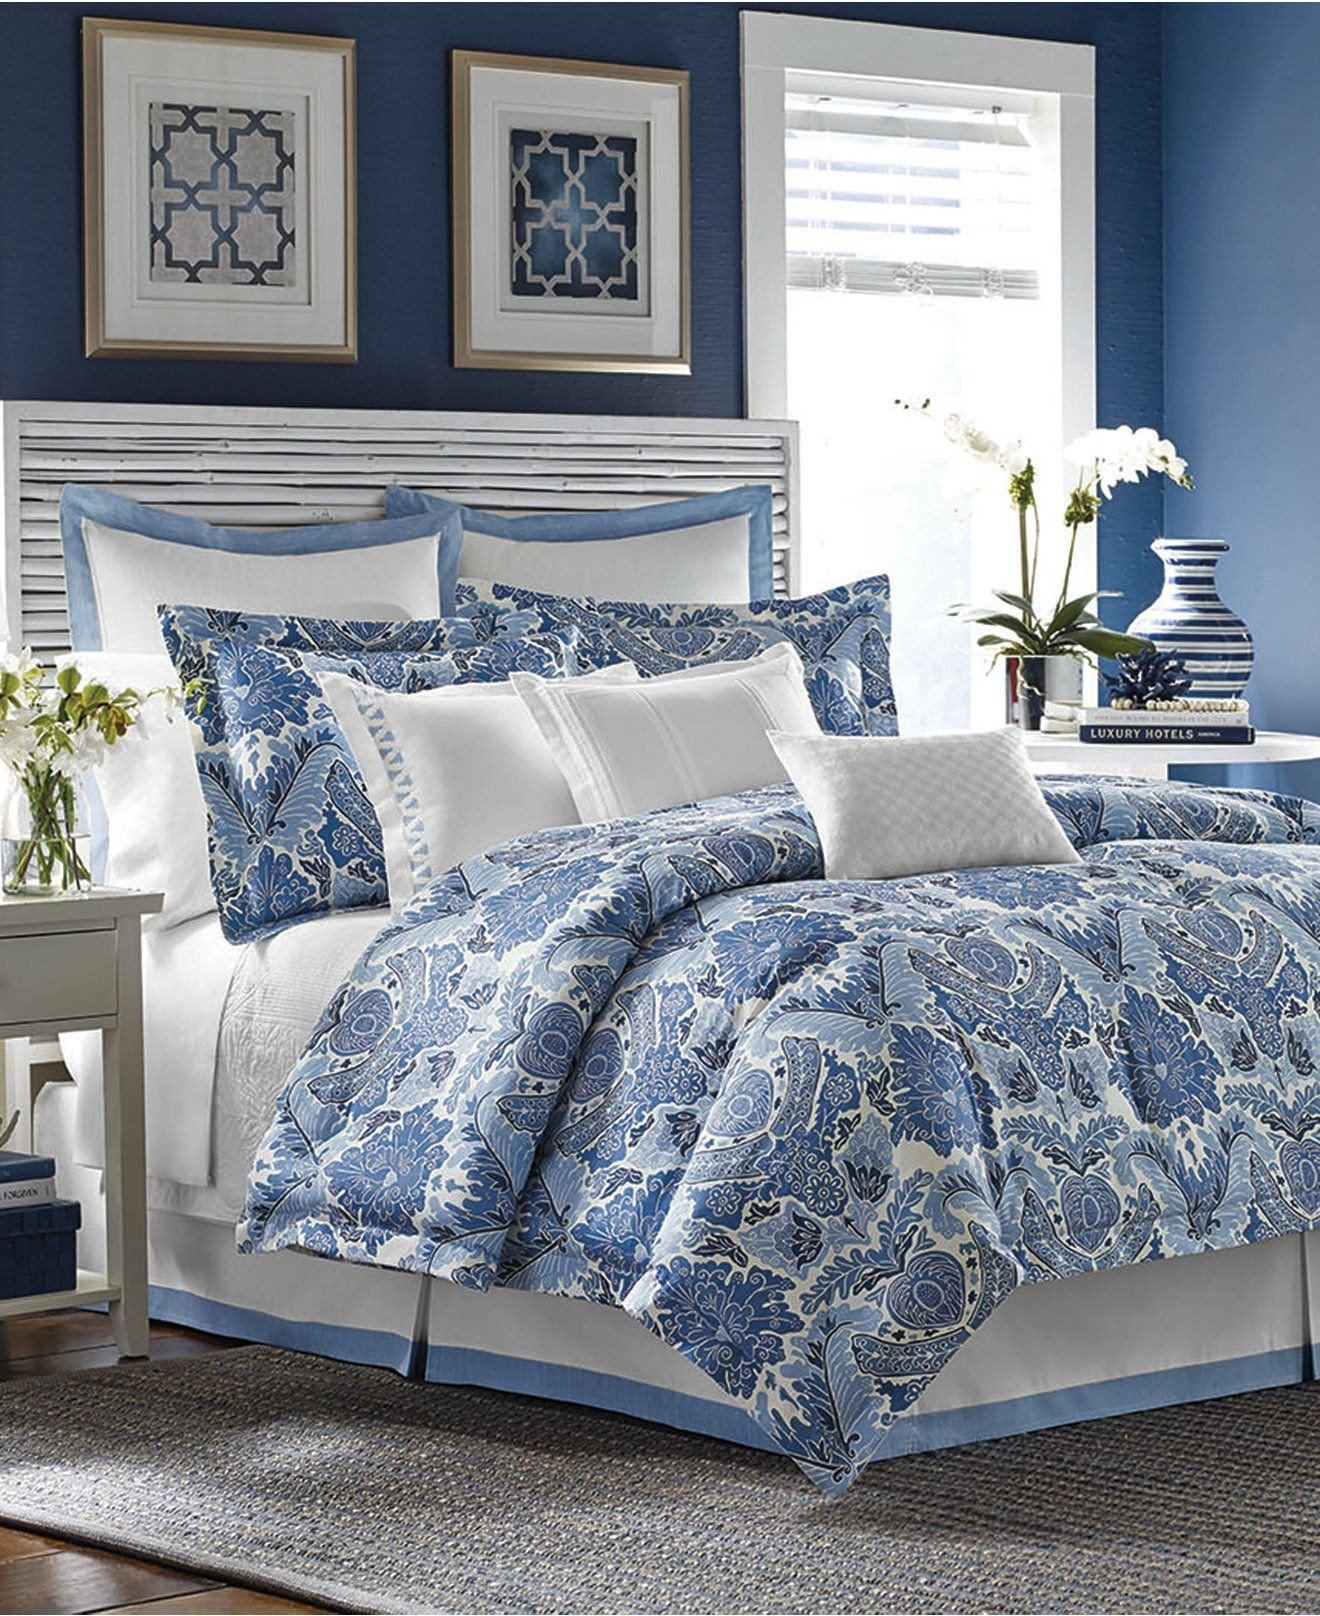 Blue Bedroom Furniture Set Inspirational tommy Bahama Porcelain Paradise forter and Duvet Sets